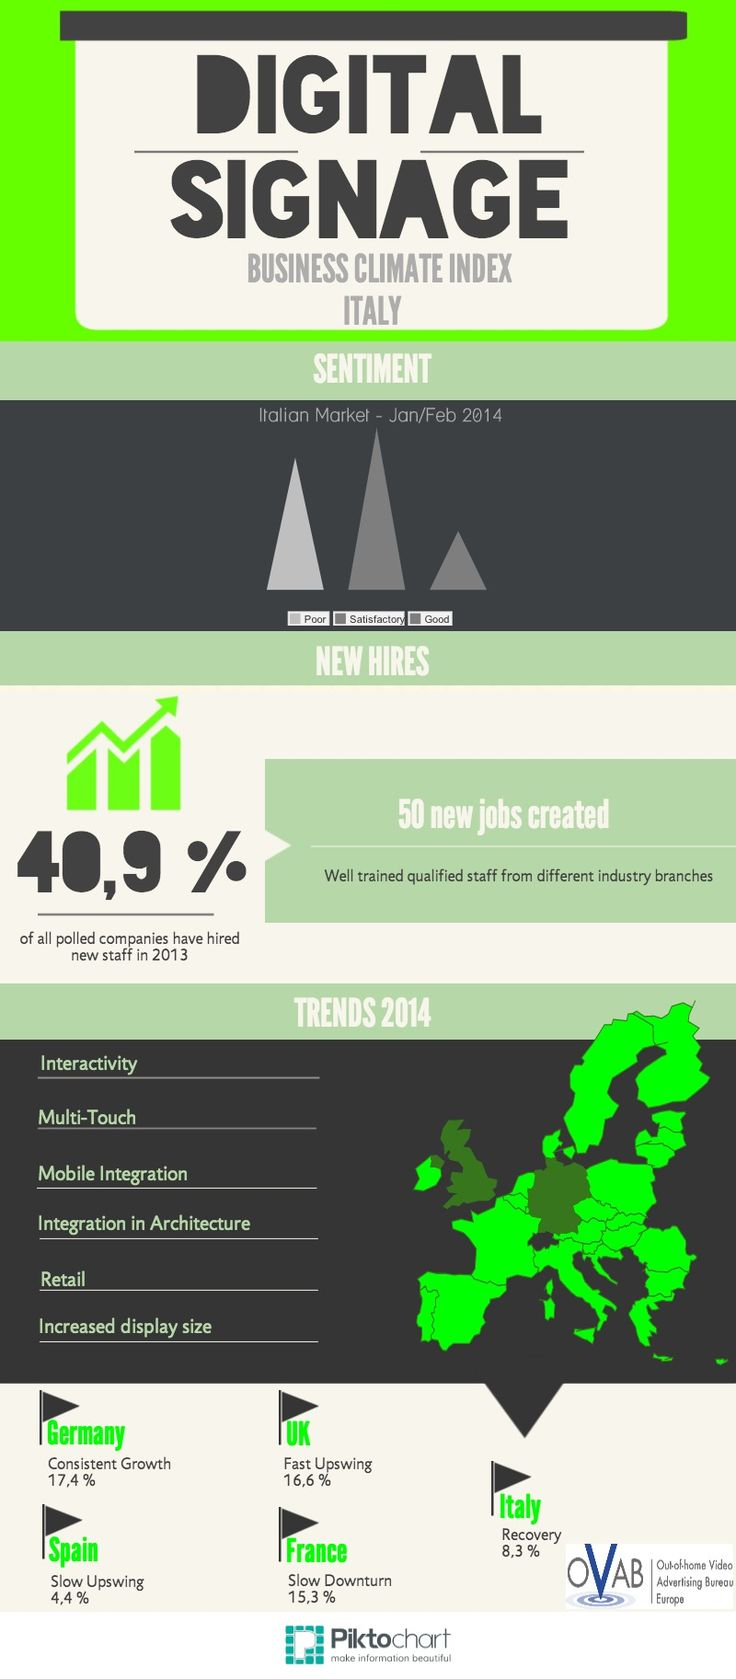 The #DigitalSignage Business Climate Index Jan/Feb 2014 Italy is out!